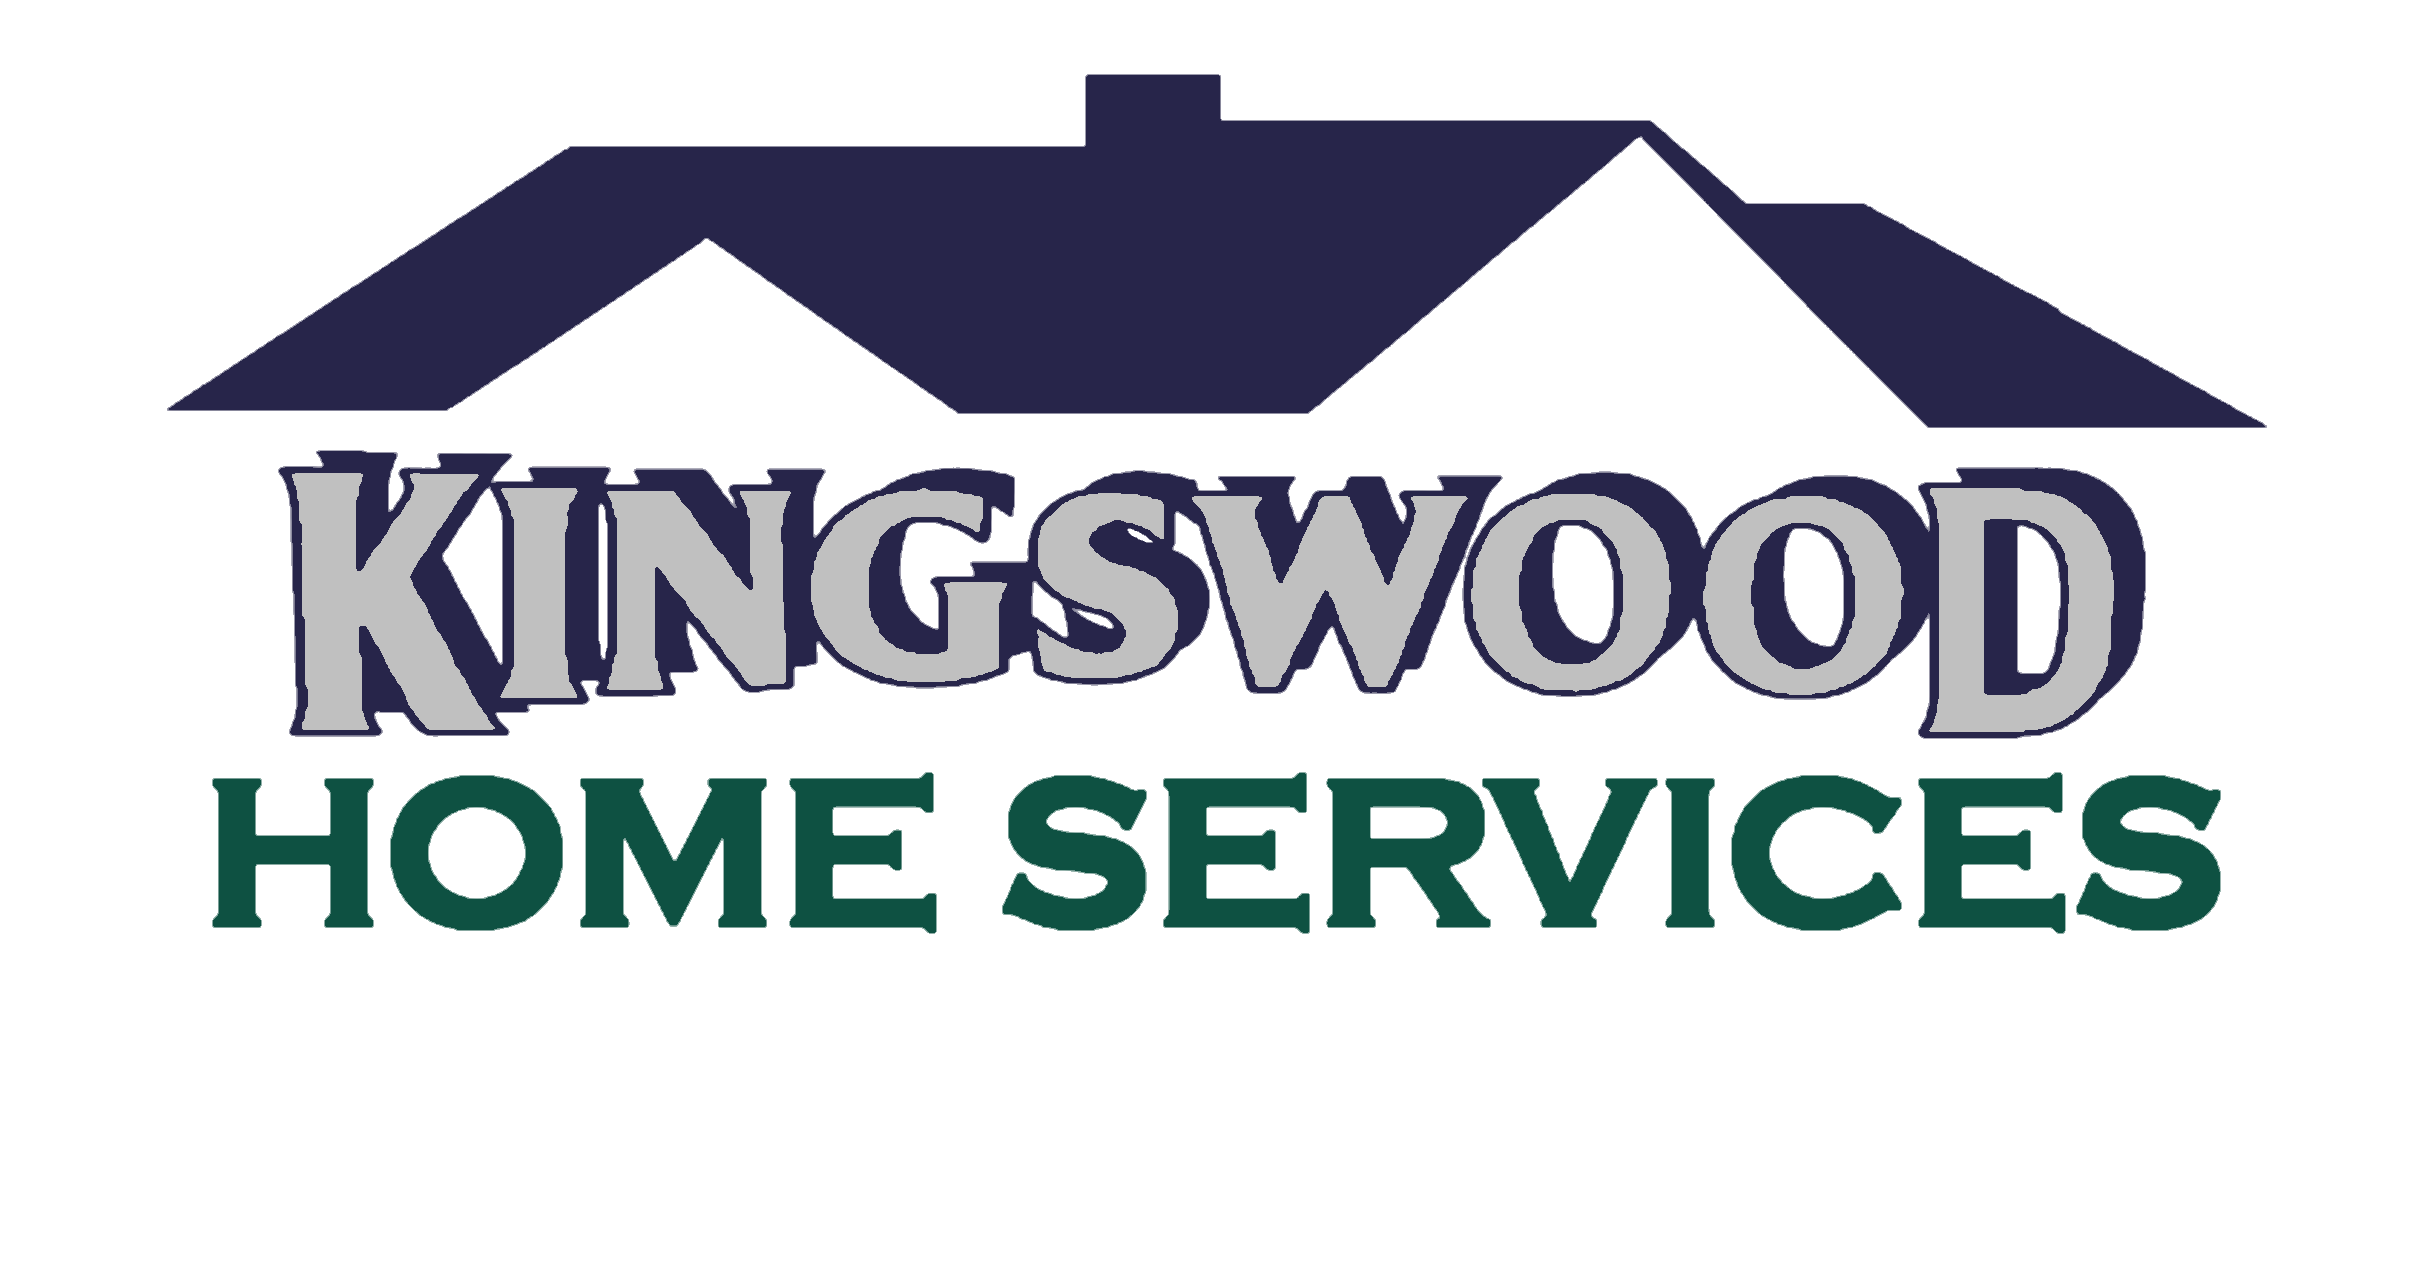 Kingswood Home Services